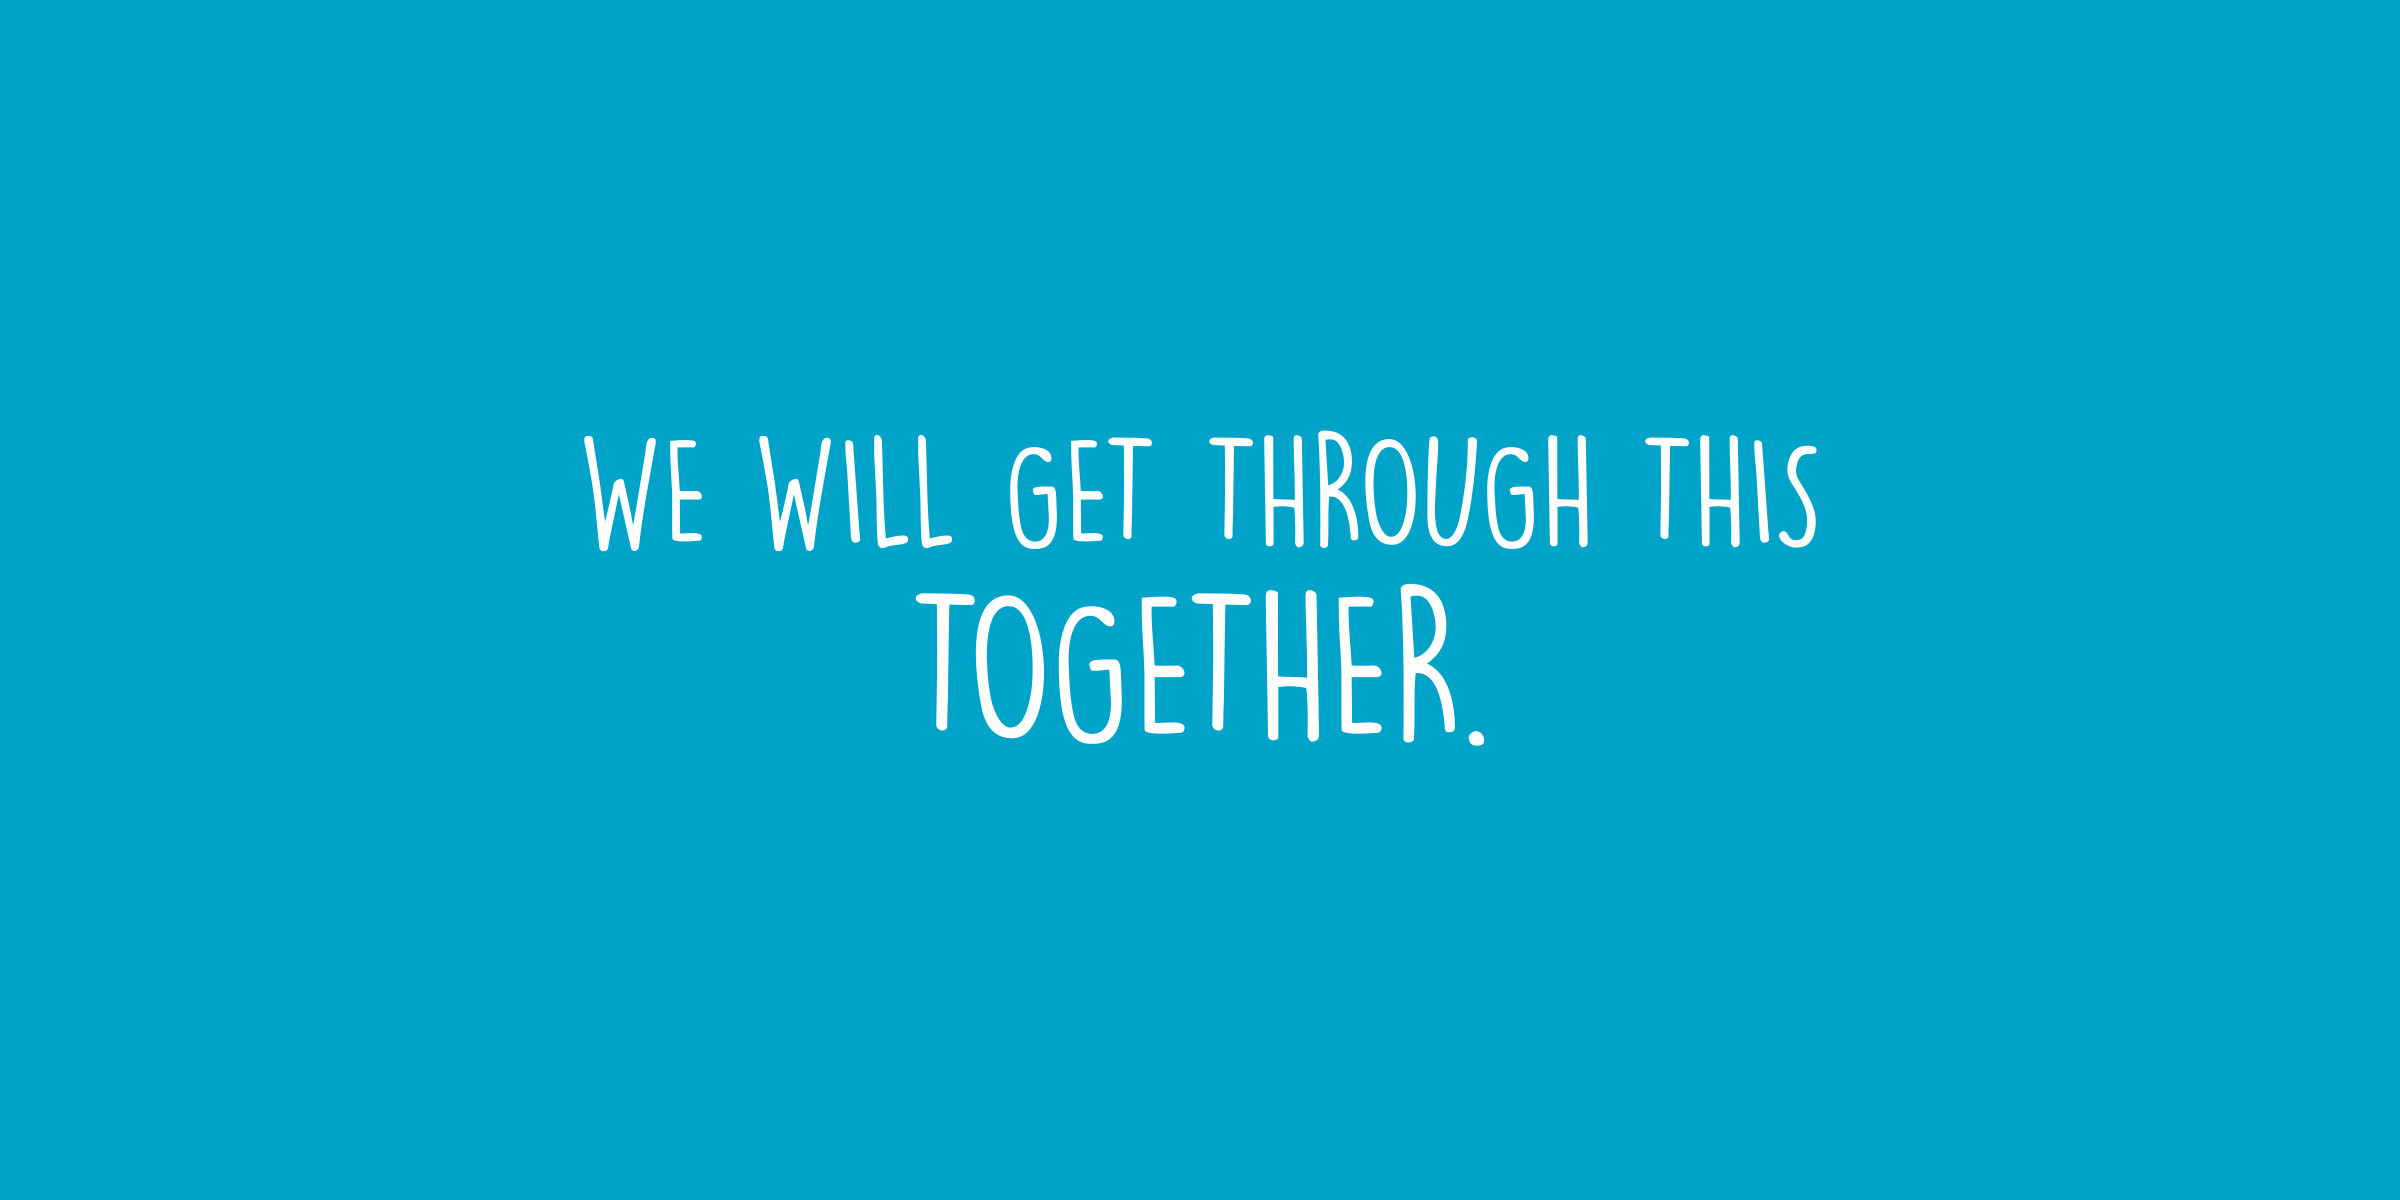 Adam Hall Group | We will get through this together